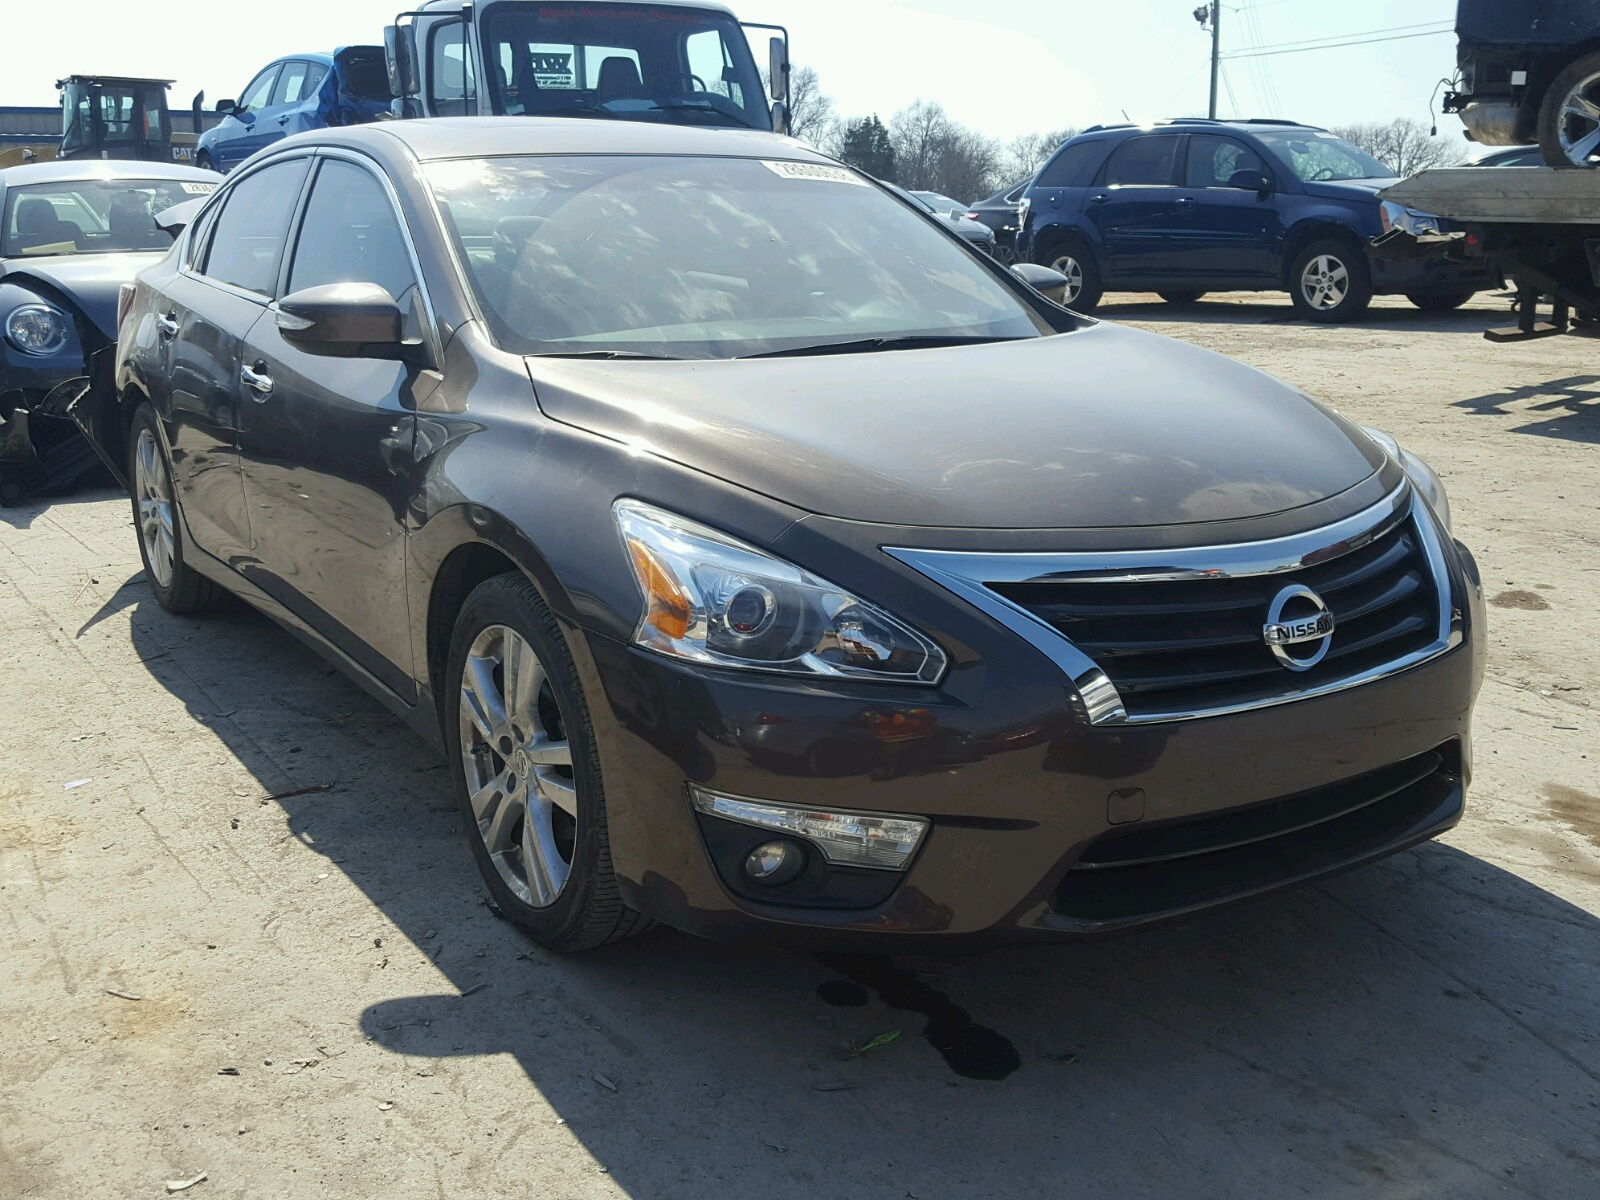 altima bought among with for be nissan unbelievable car stunning besides sale to